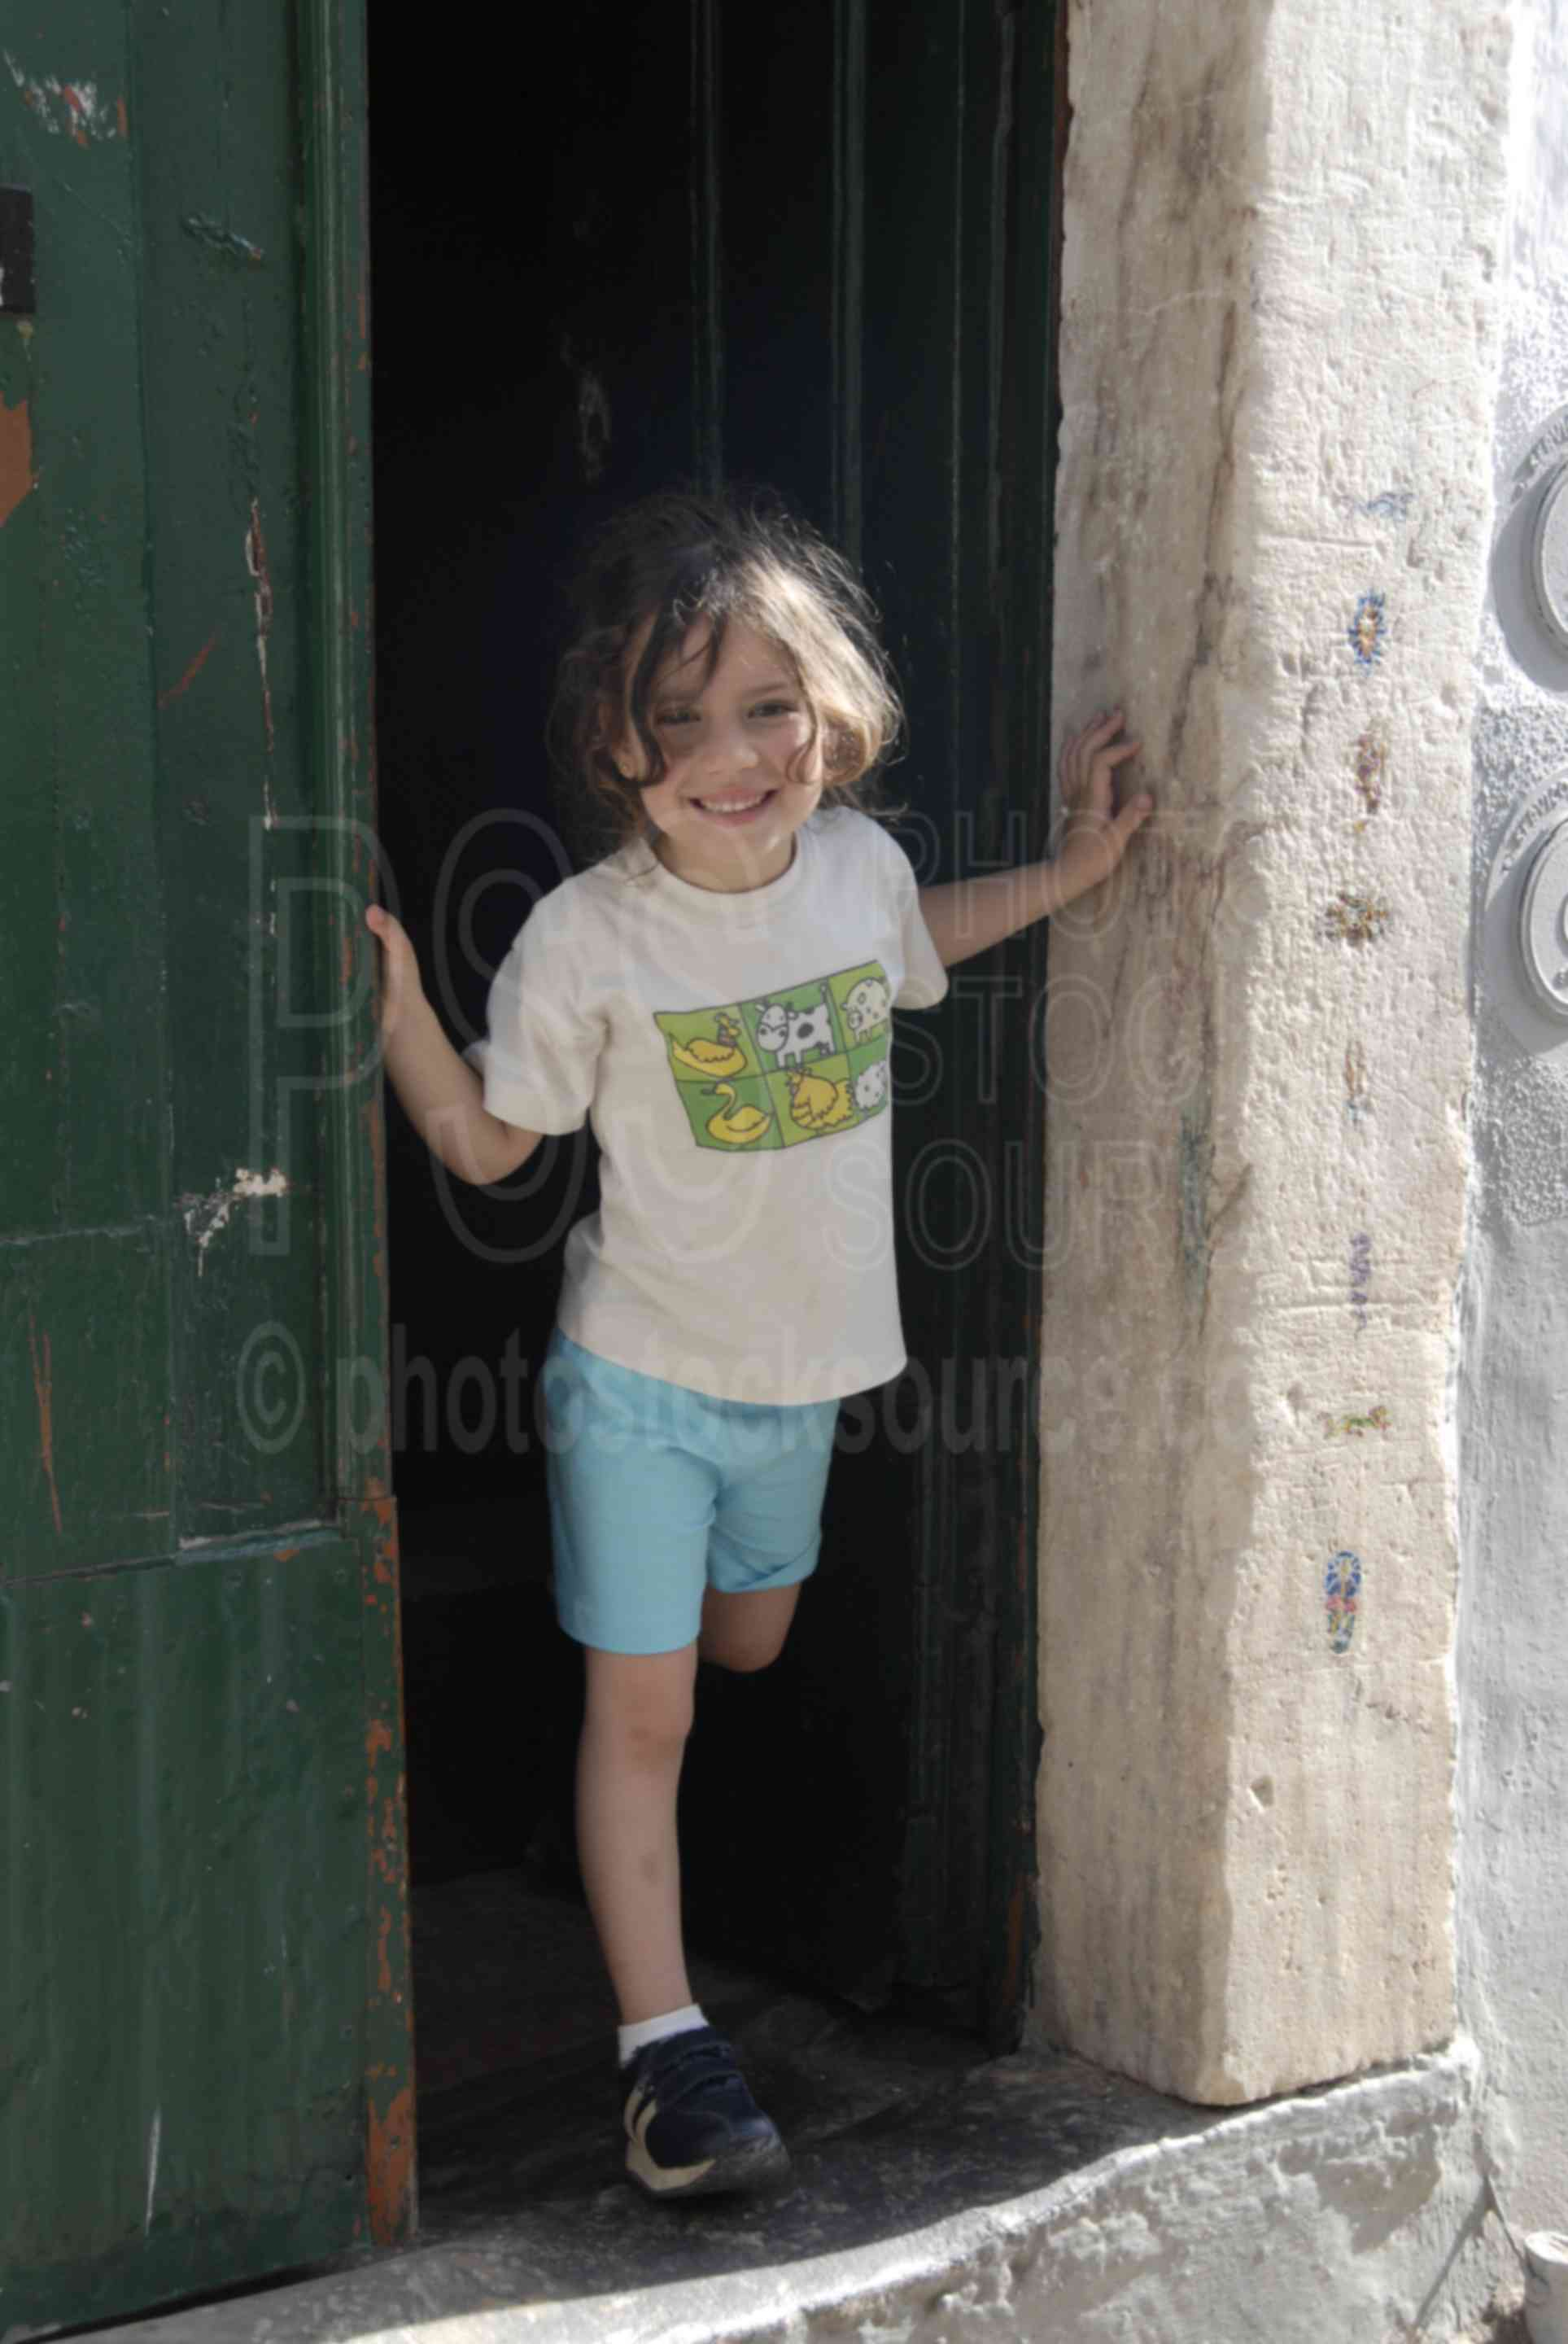 Girl in Doorway,girl,little girl,smile,smiling,children